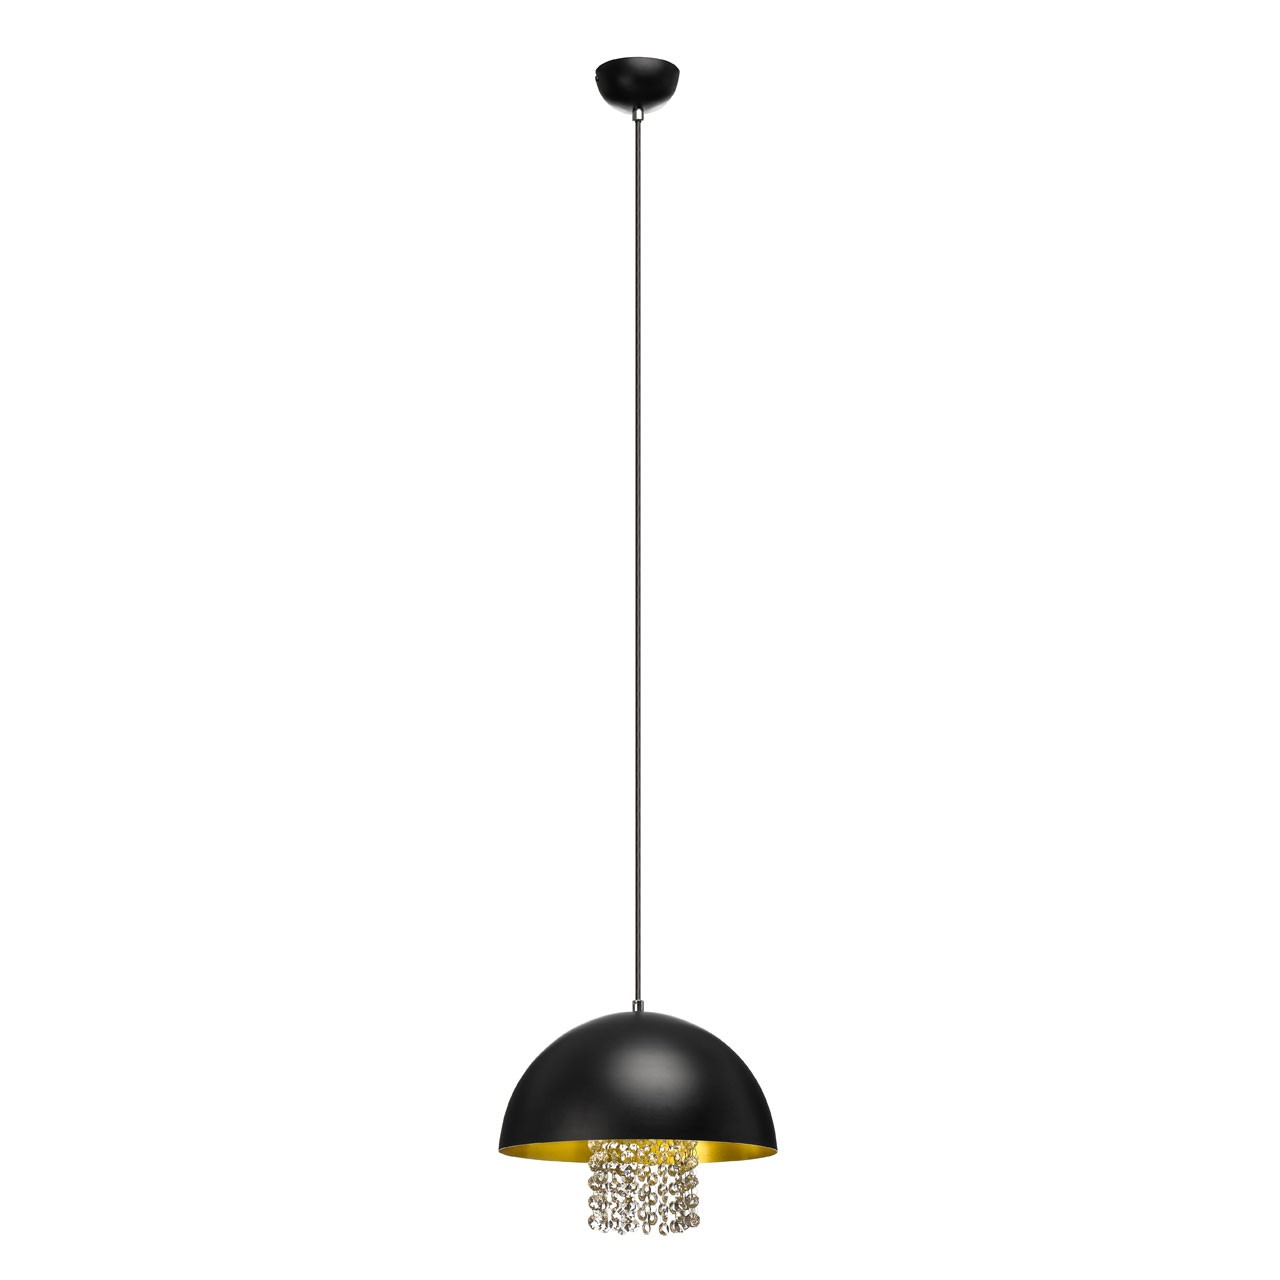 Prime Furnishing Pendant Light with Crystals - Black